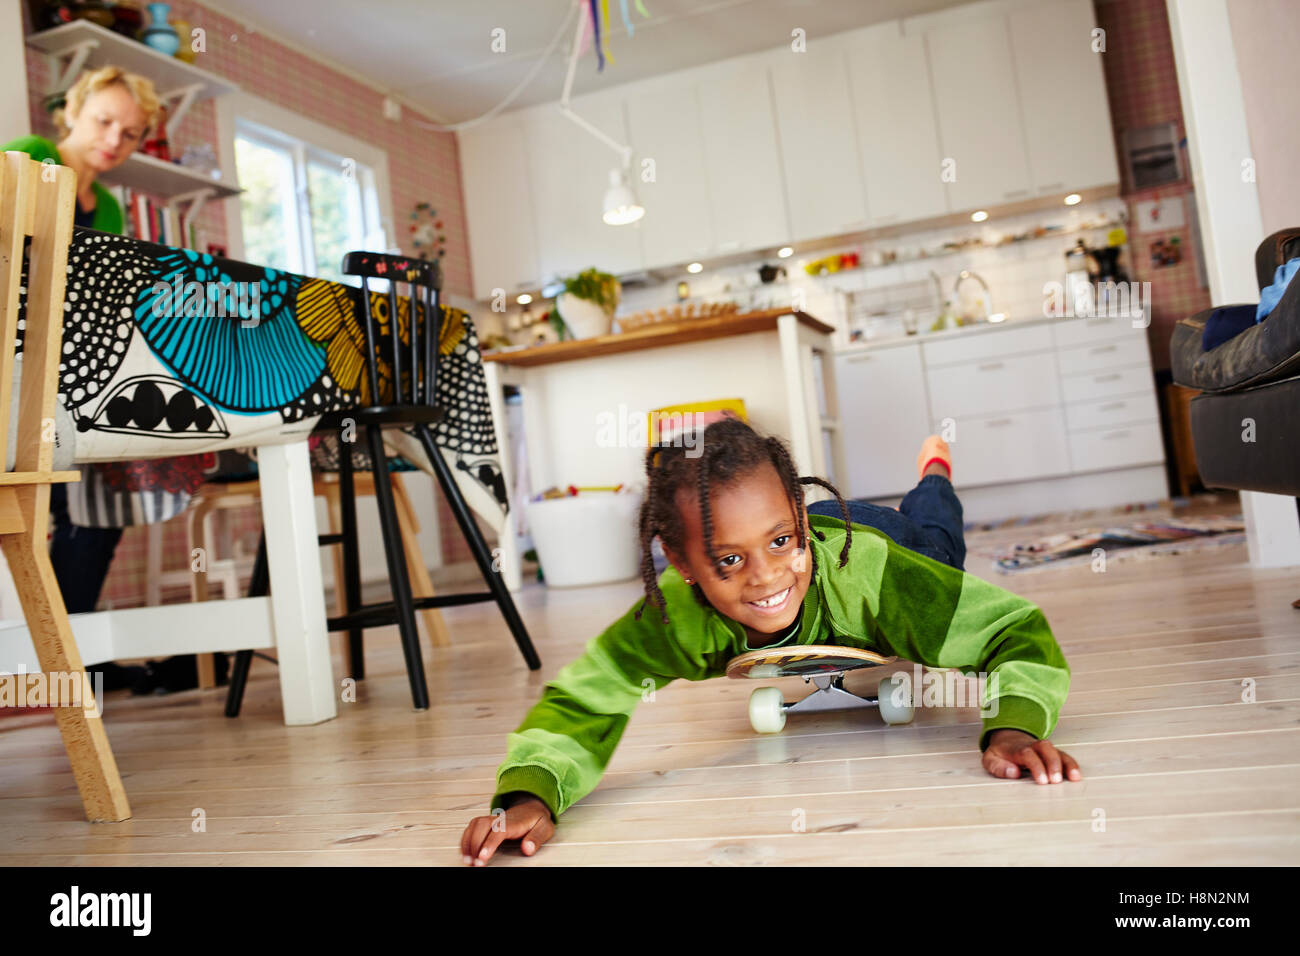 Girl (6-7) lying on skateboard on kitchen floor Stock Photo